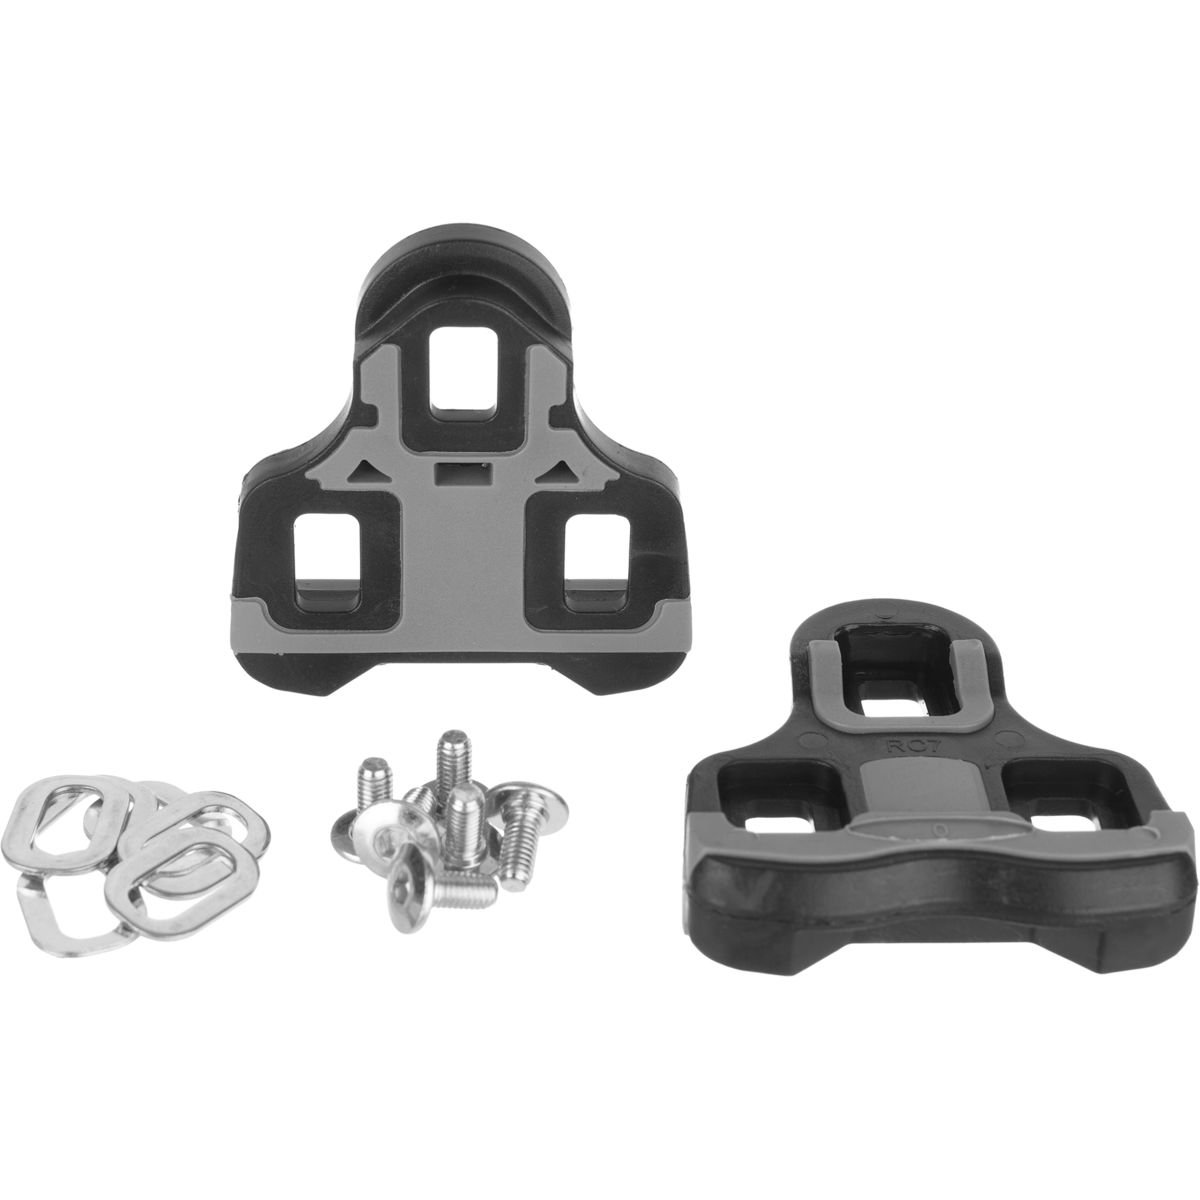 44eb3bca0 PowerTap P1 Road Cleats   Replacement Cleats   Sports   Outdoors - tibs